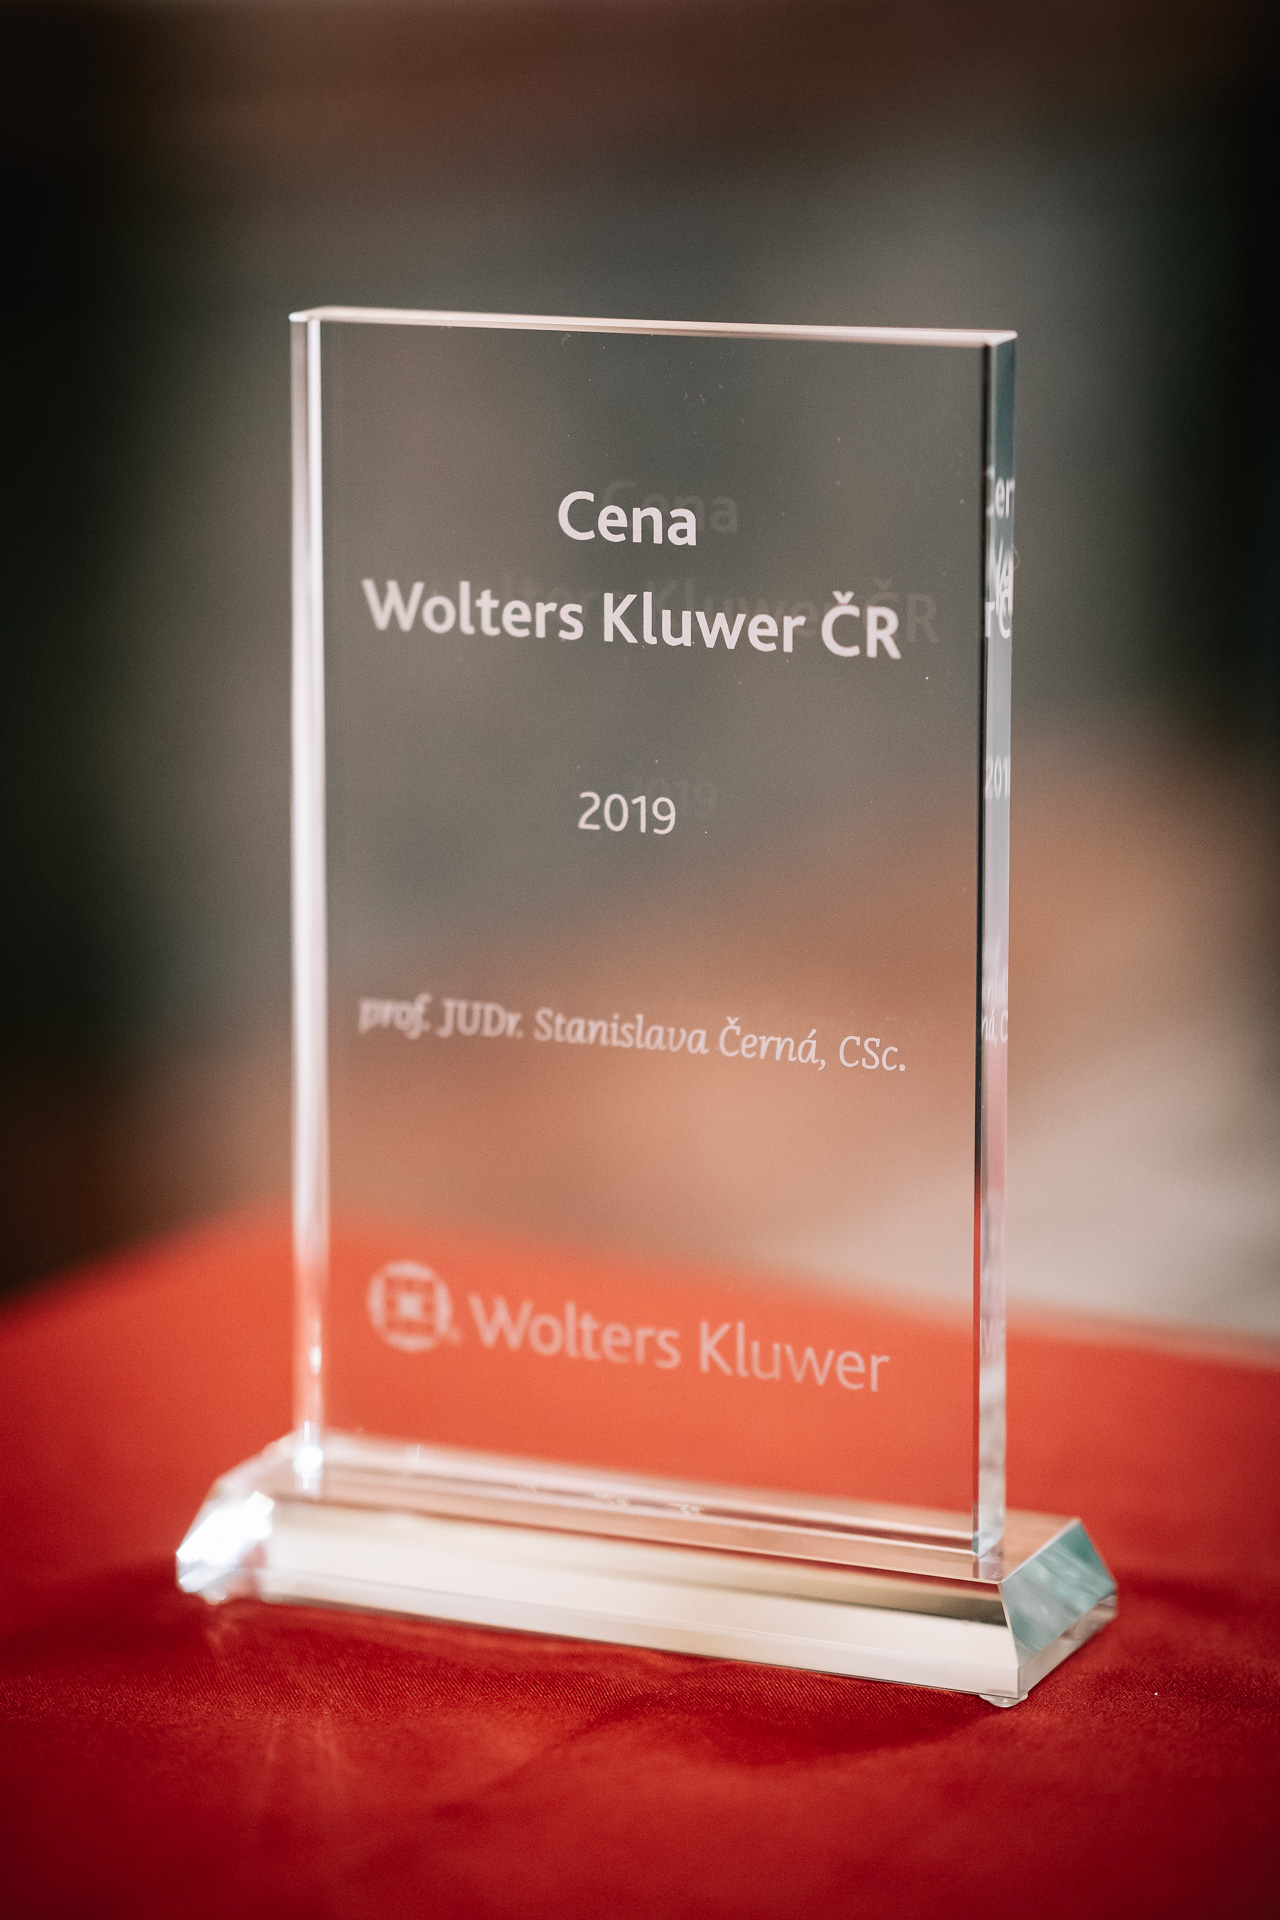 Cena Wolters Kluwer 2019